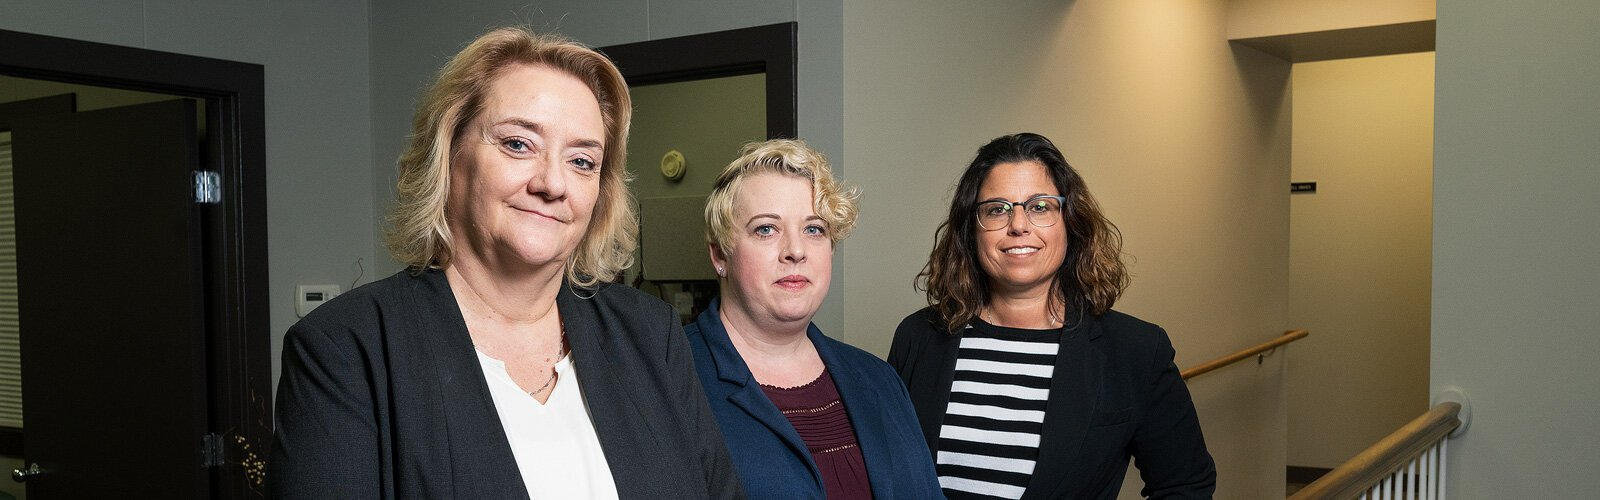 R2AAA executive director Julie Wetherby, R2AAA elder-abuse victims specialist program manager Angela Shepherd, and R2AAA assistant director Kara Lorenz-Goings.